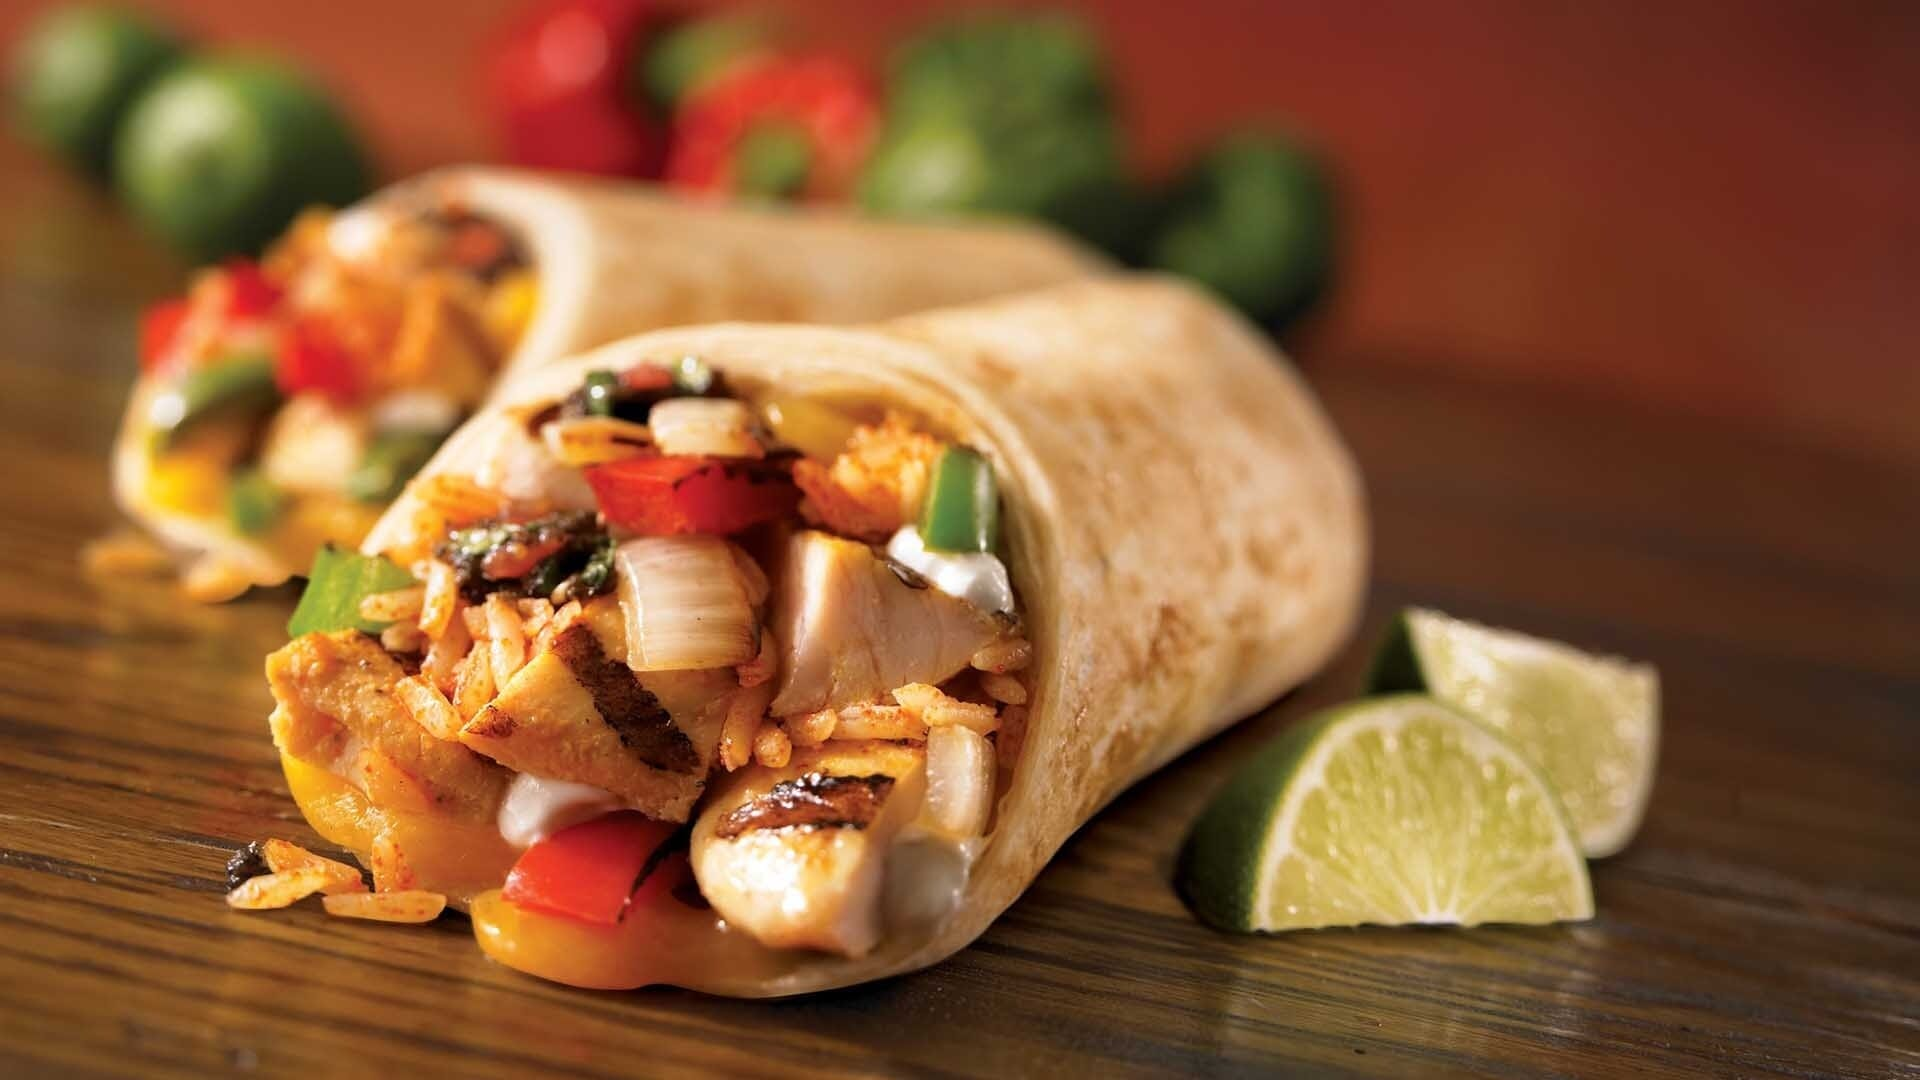 Burrito chicken close up 461198